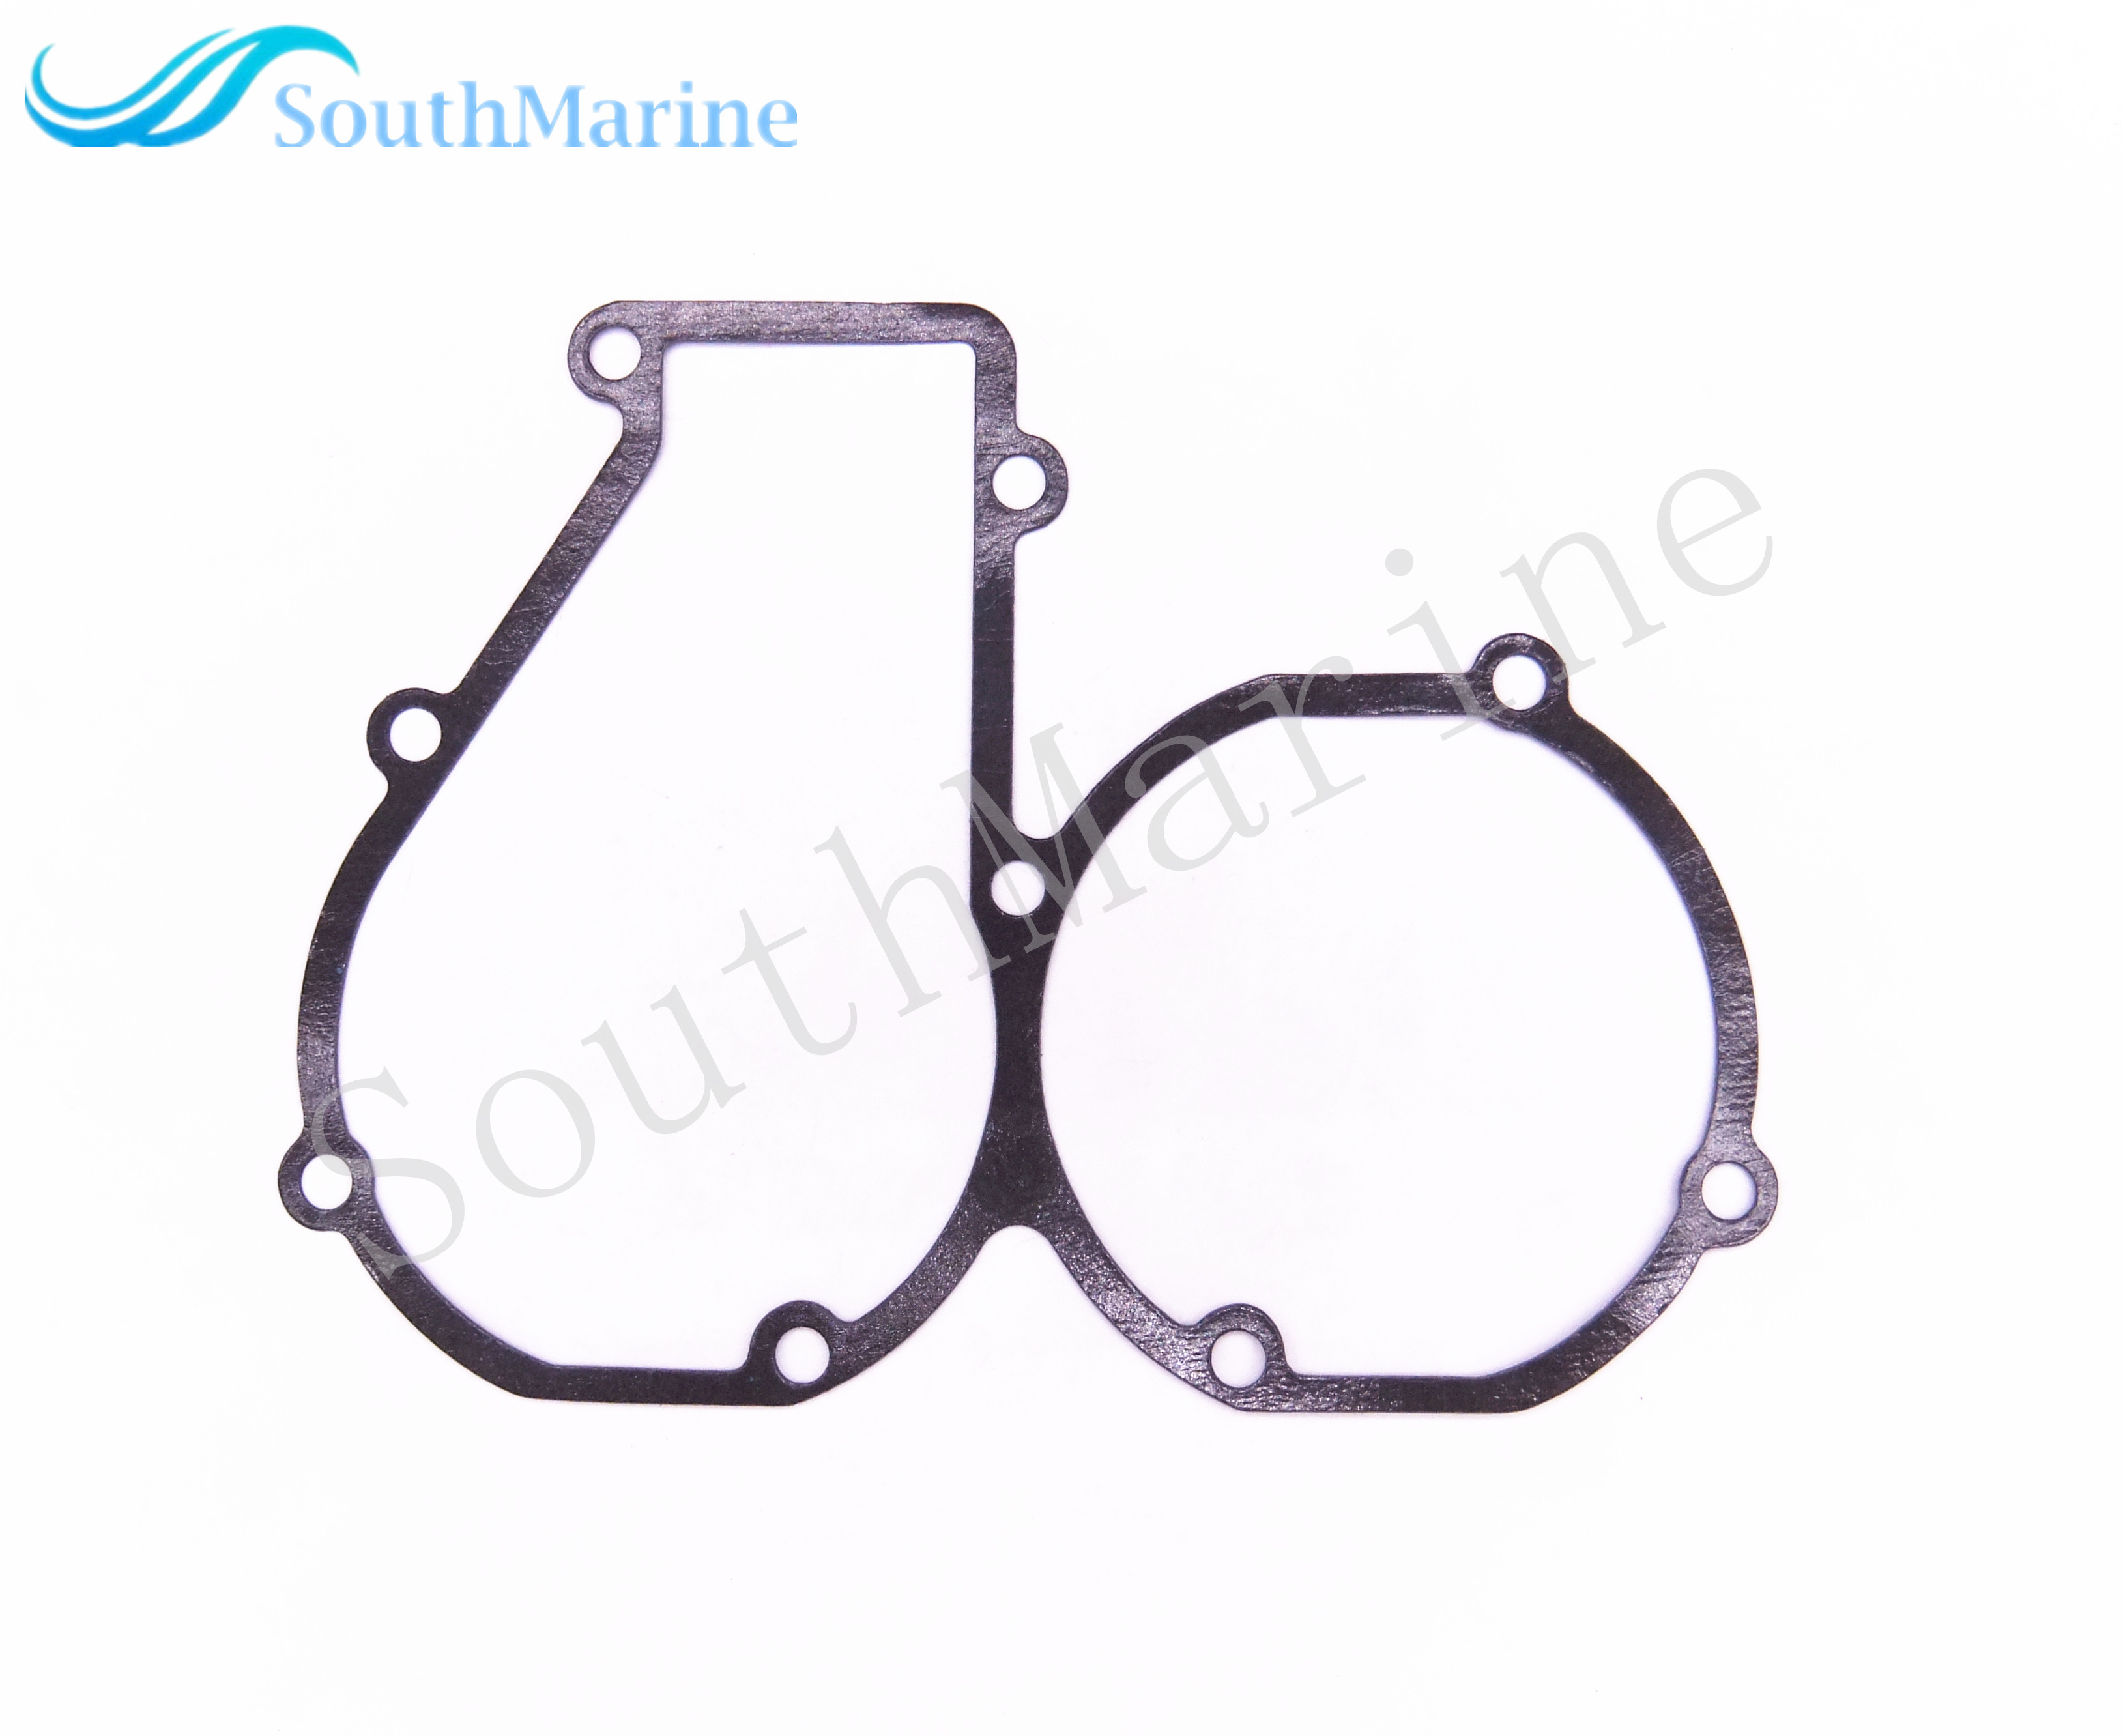 30F-01.03.00.11 Valve Seat Gasket for Hidea 2-Stroke 30F 25F Boat Motor Outboard Engine Free Shipping